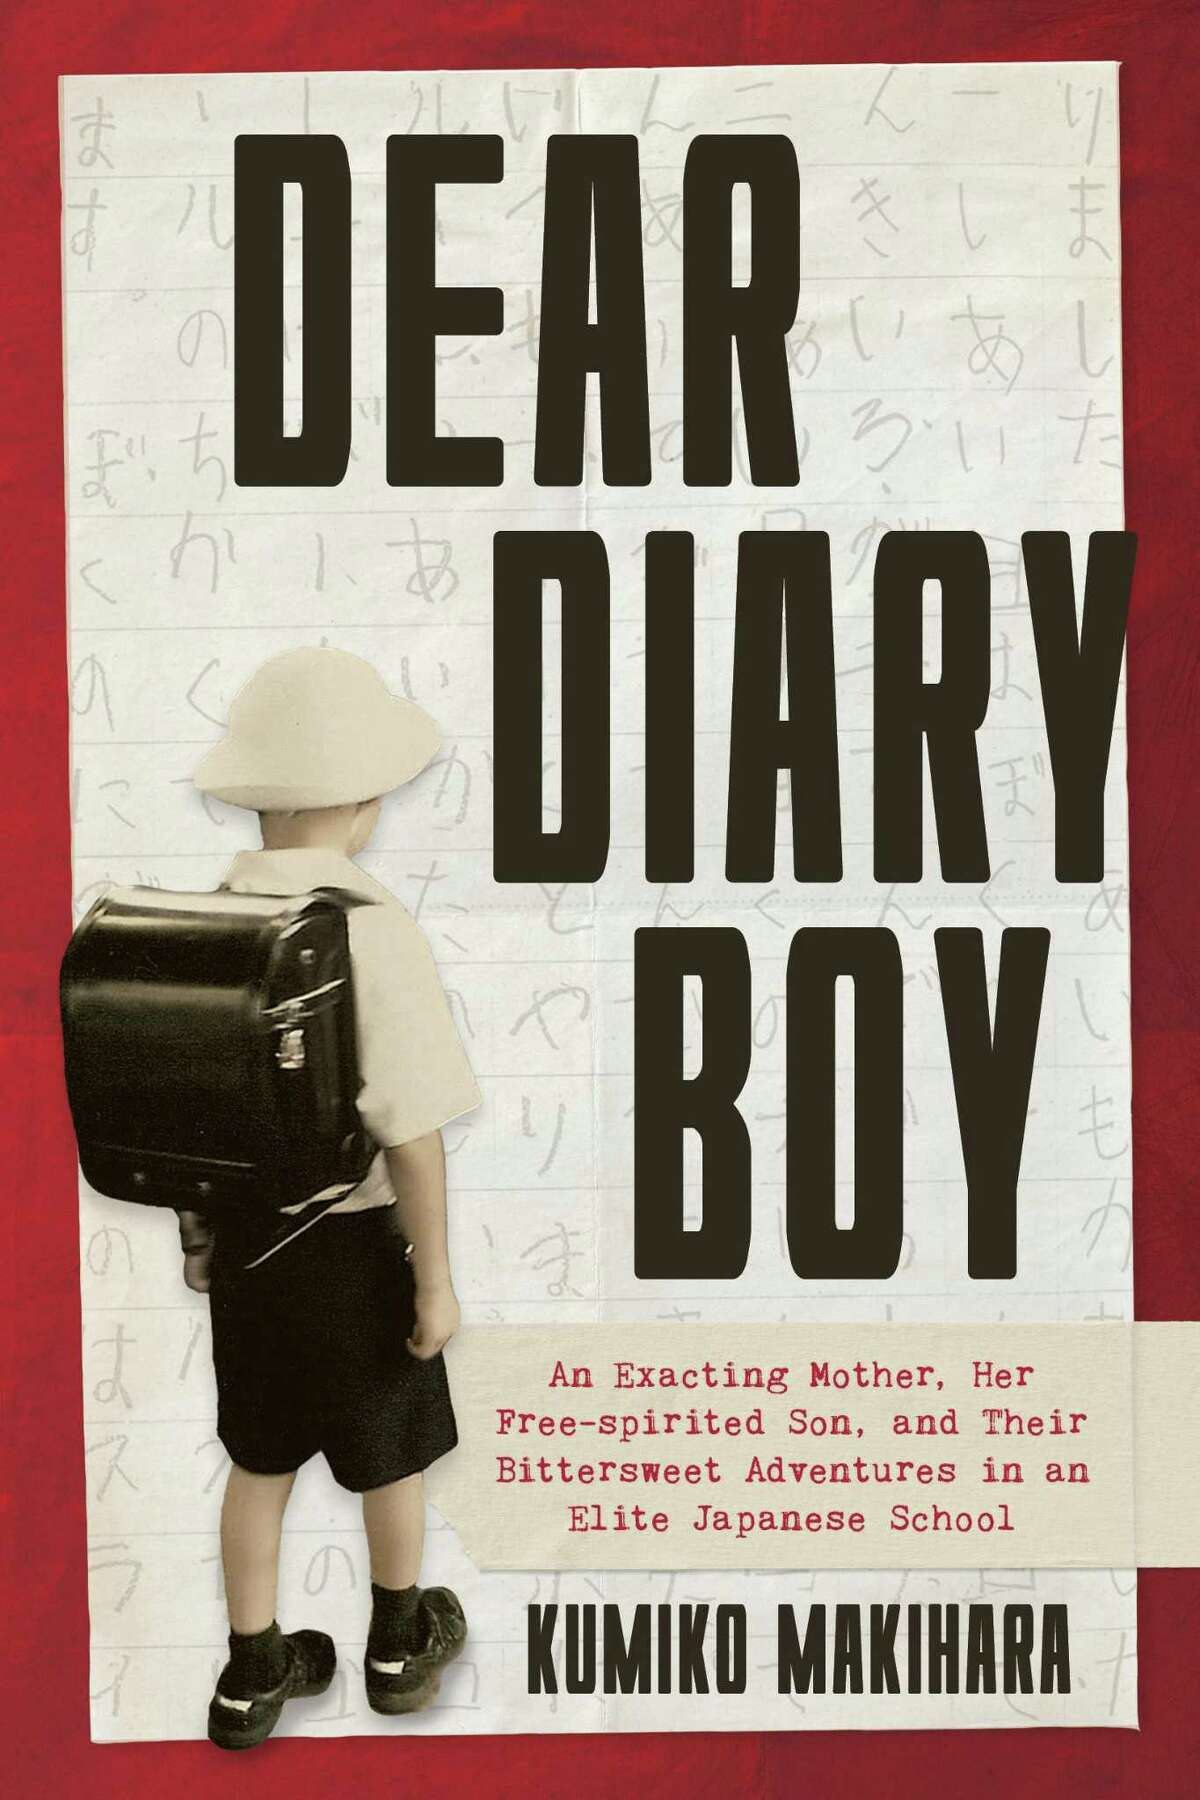 """Author and journalist Kumiko Makihara will discuss Japanese schools, which she explores in her book """"Dear Diary Boy,"""" at the New Canaan Library Thursday, Sept. 17."""